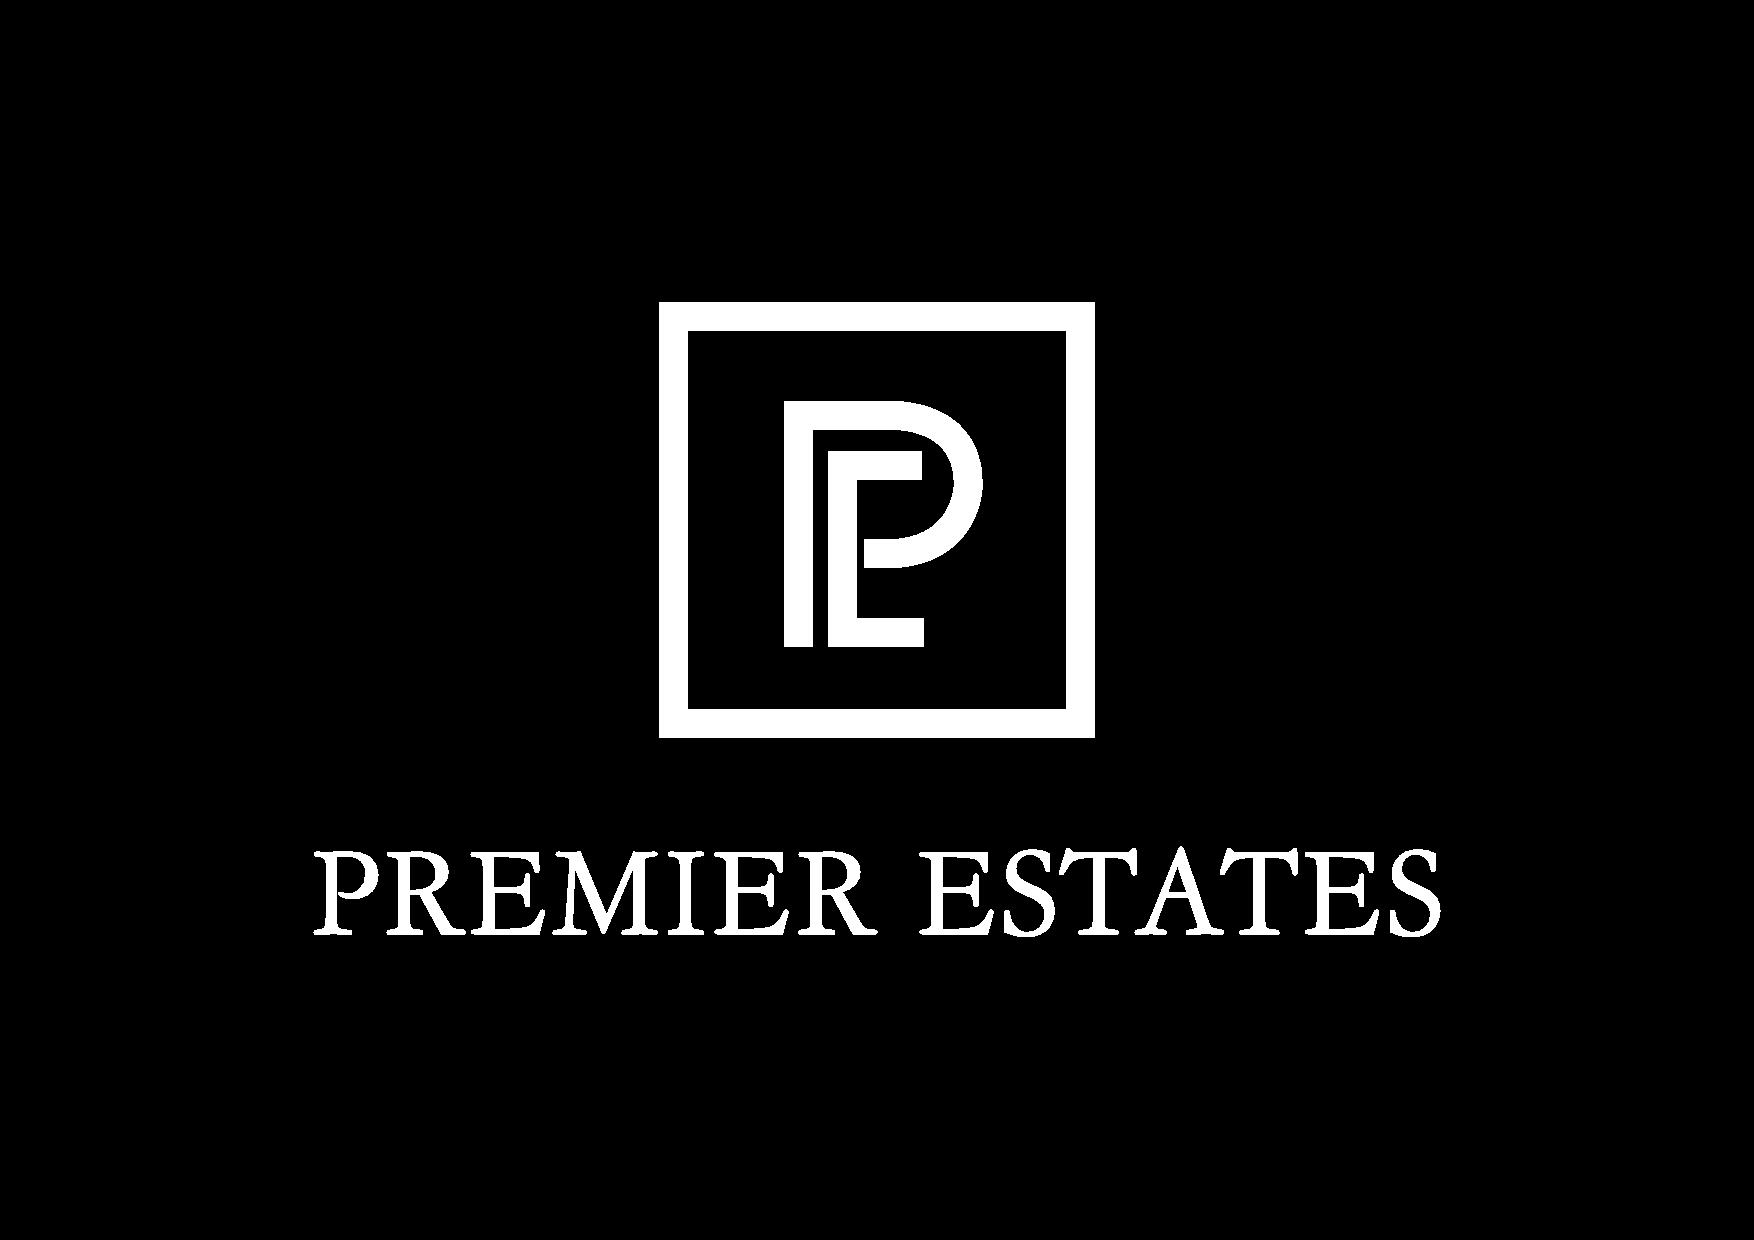 Premier Estates Real Estate Brokers